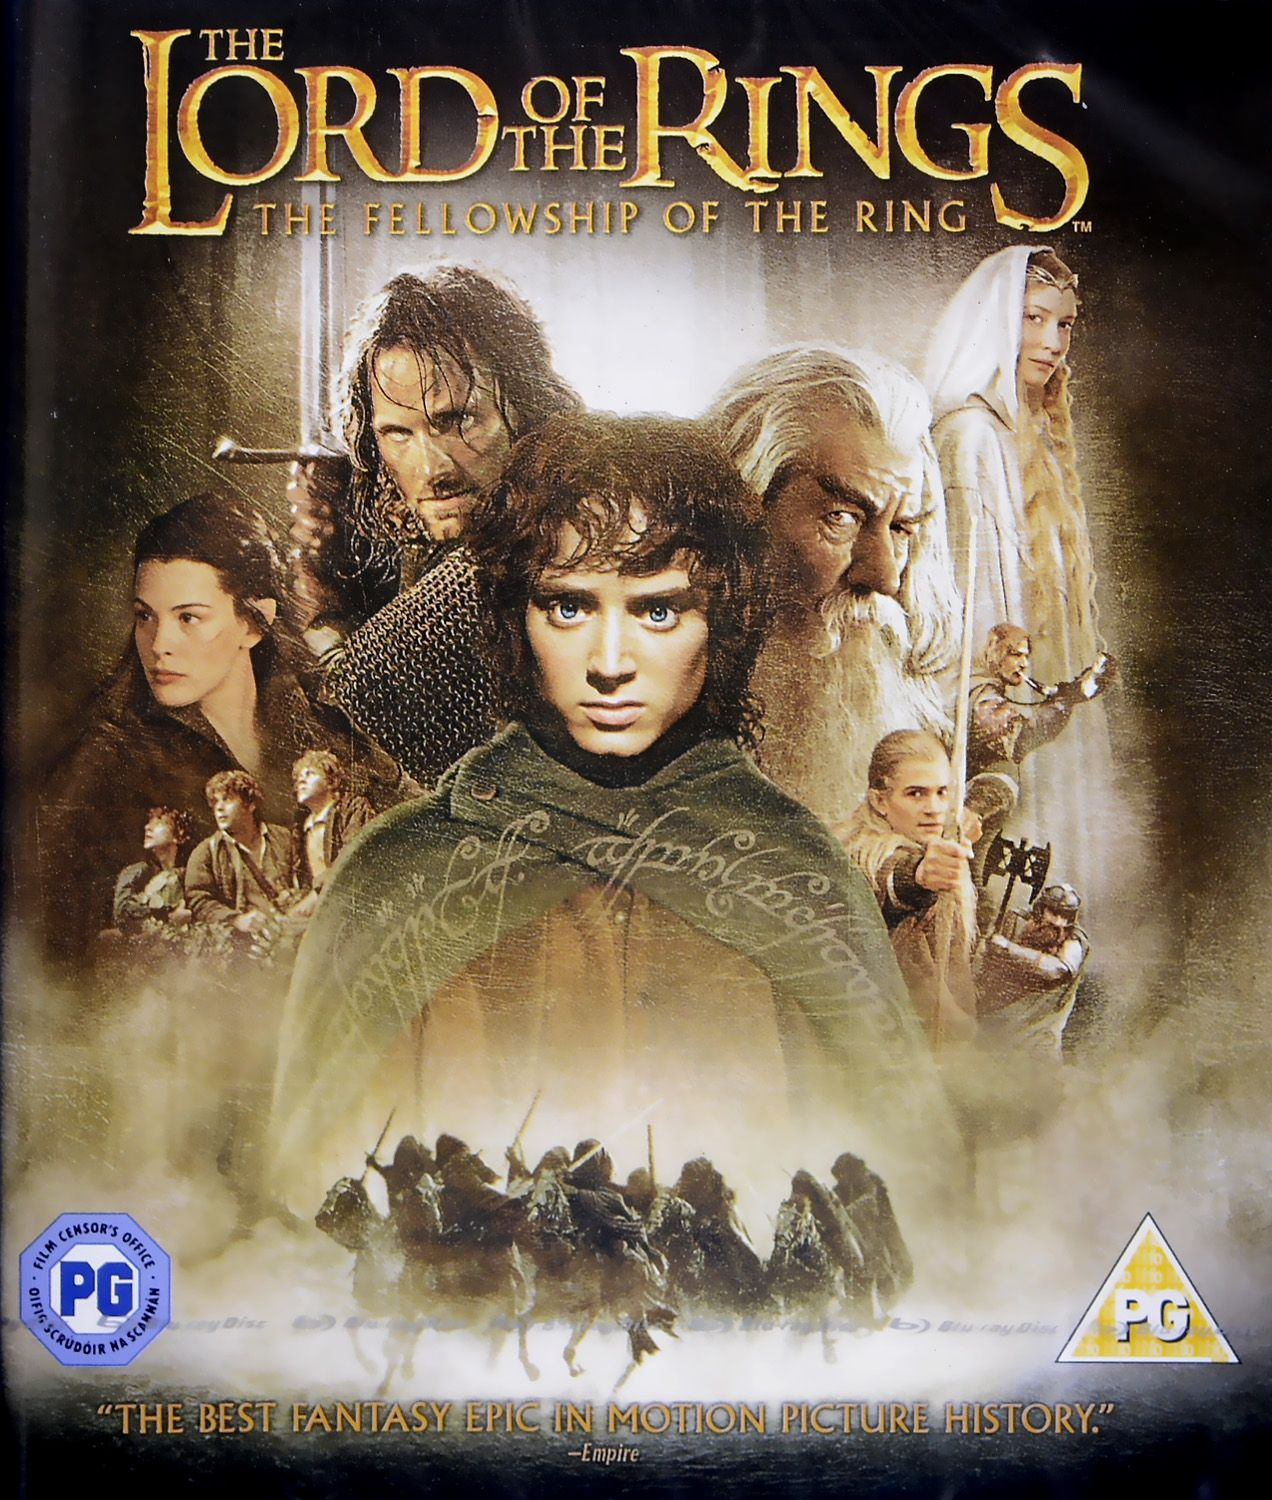 The Lord of the Rings: The Fellowship of the Ring (Blu-Ray) - 1